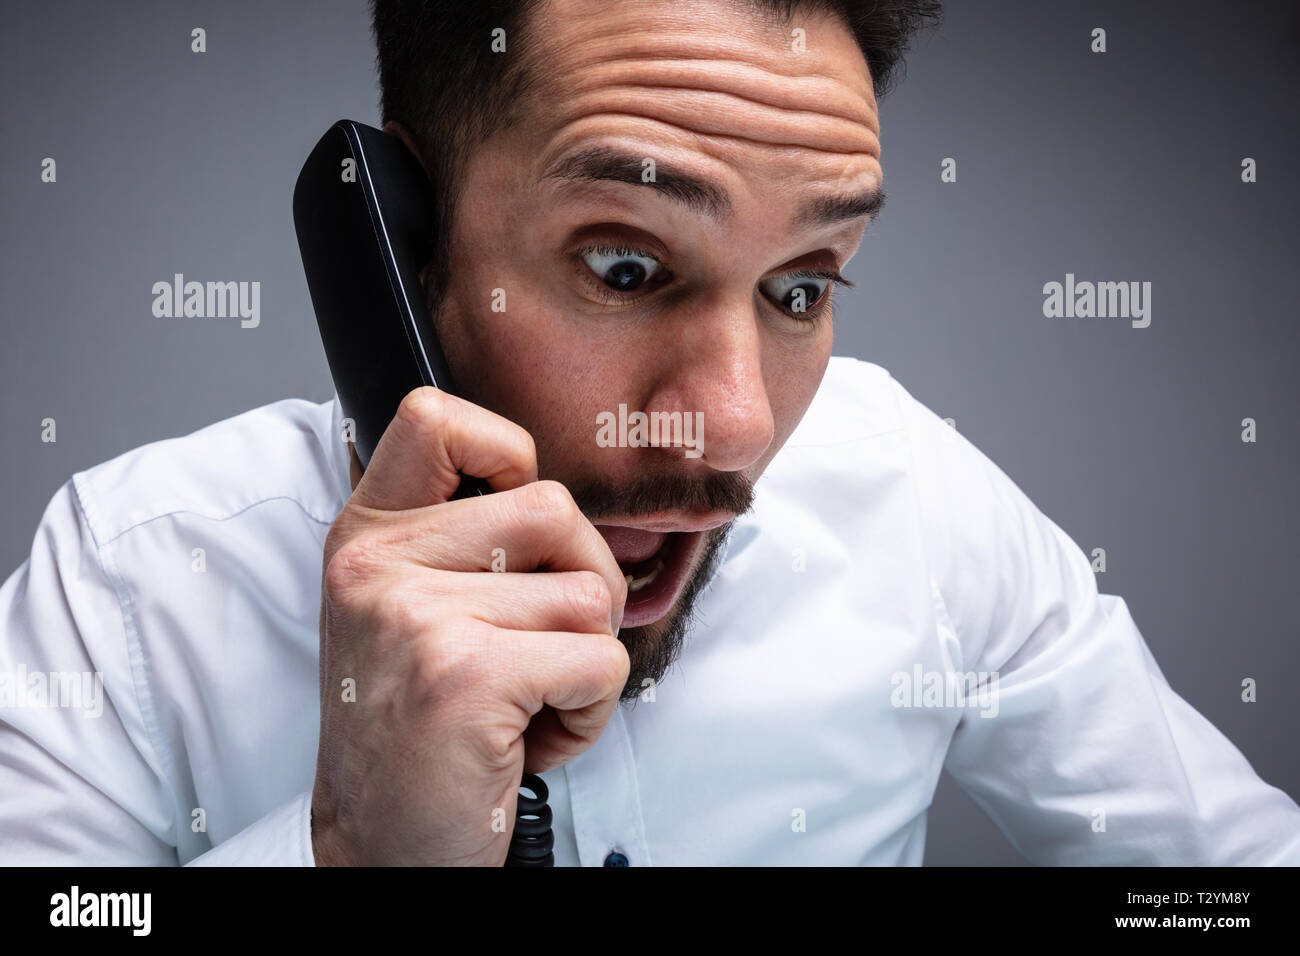 Close-up Of Frustrated Businessman Yelling An Phone - Stock Image